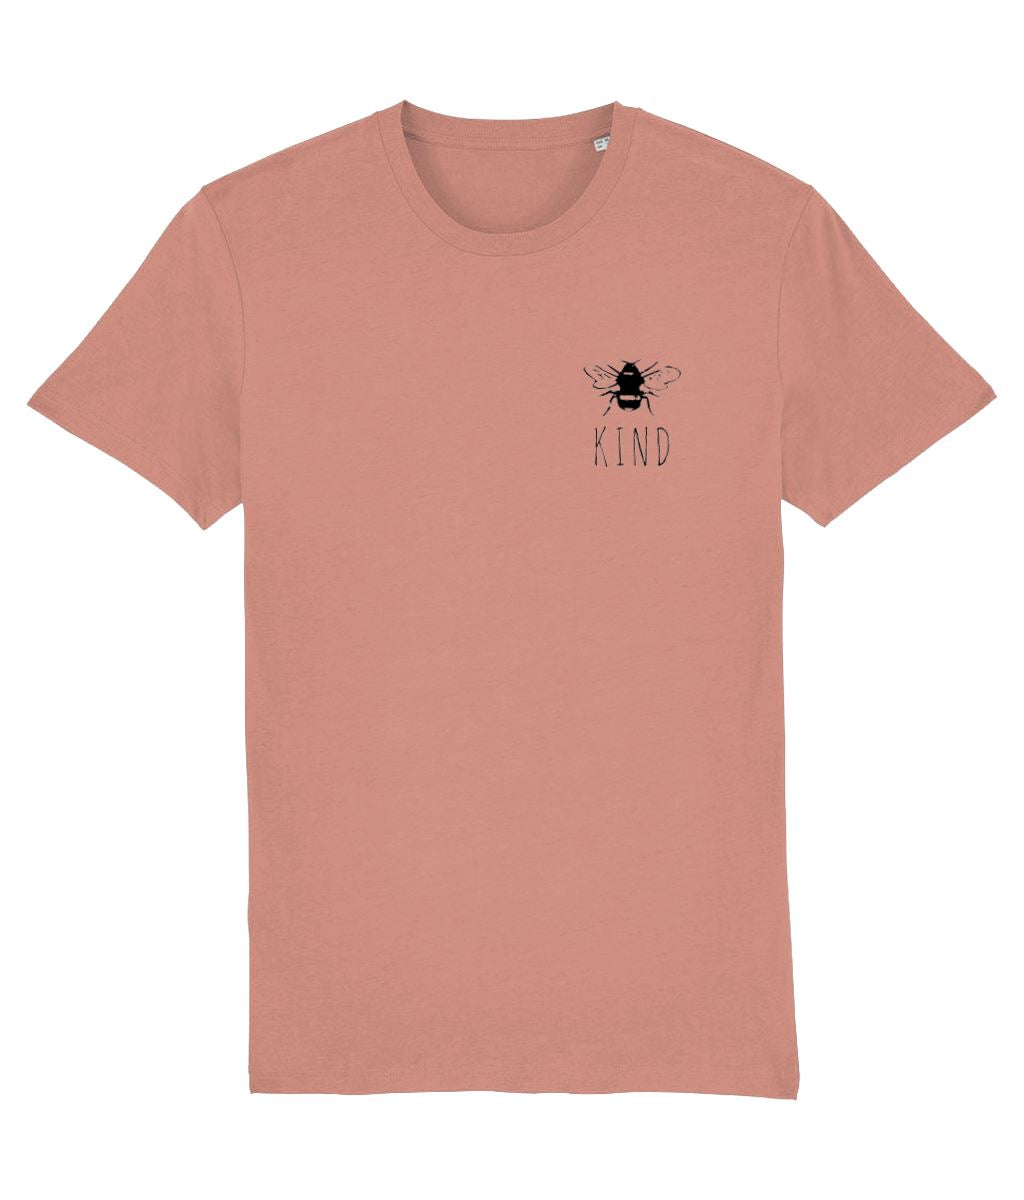 """Bee Kind"" Smart Vegan T-Shirt- 100% Organic Cotton (Unisex) Clothing Vegan Original Sunset Orange X-Small"